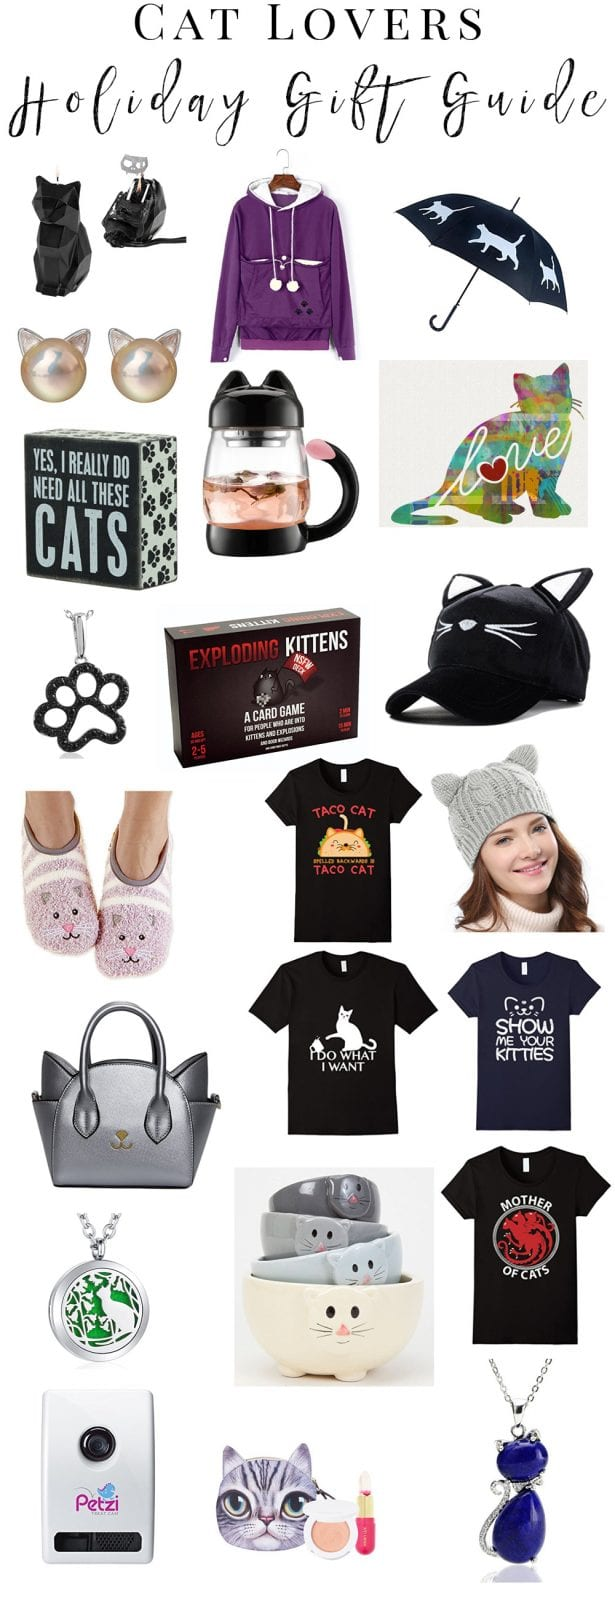 Cat Lovers Holiday Gift Guide - The best cat lover gifts to buy on Amazon.